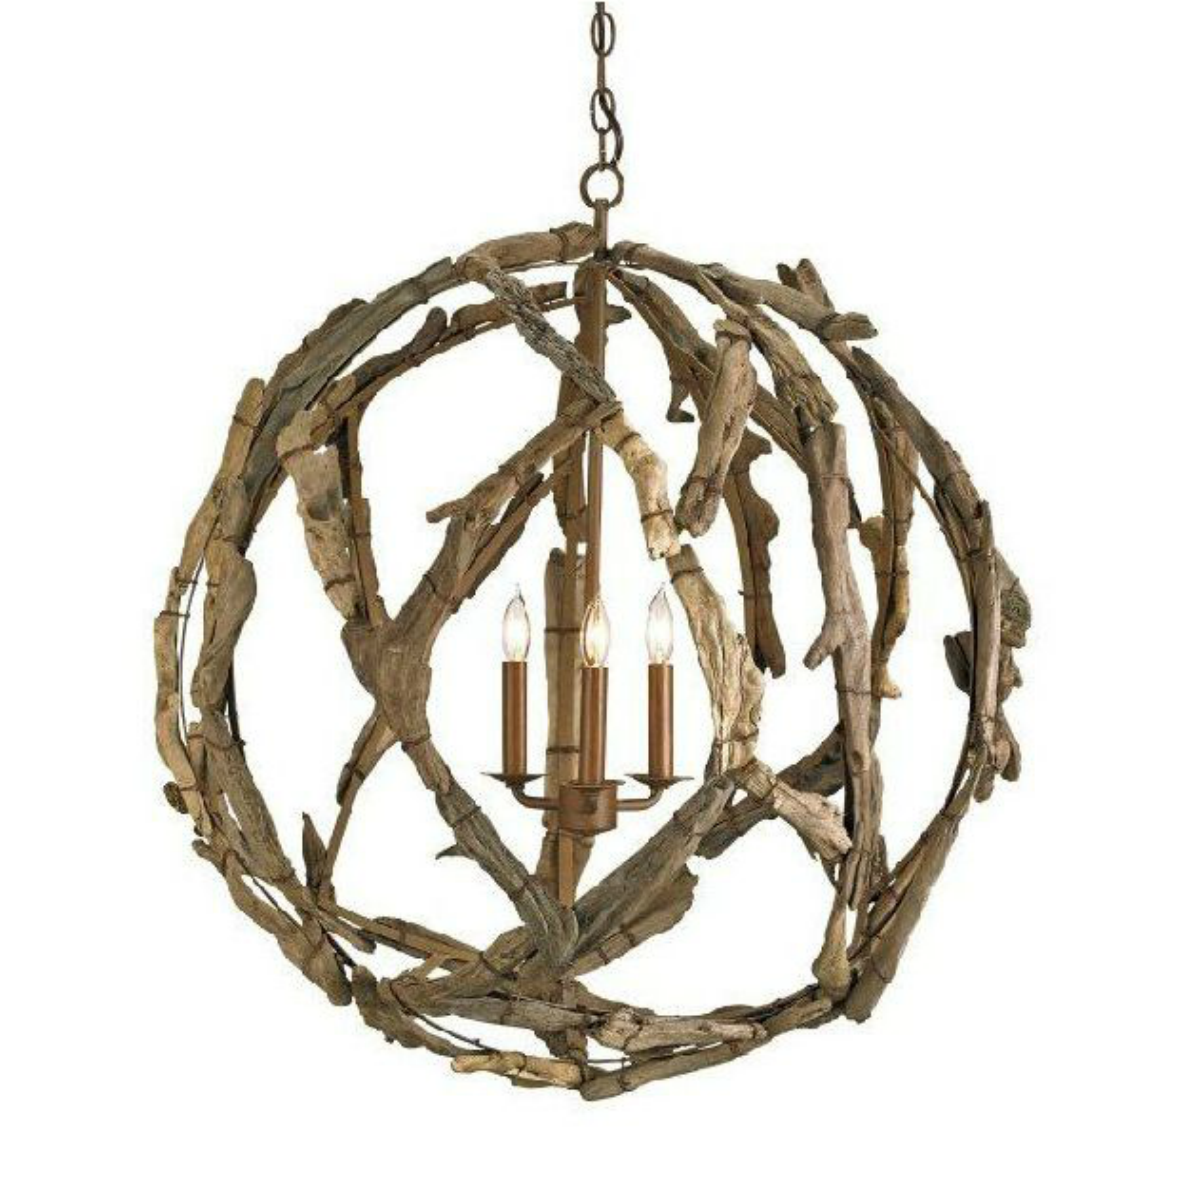 Excellent sphere chandelier metal orb chandelier with interesting Cheap Price for your Home Lighting